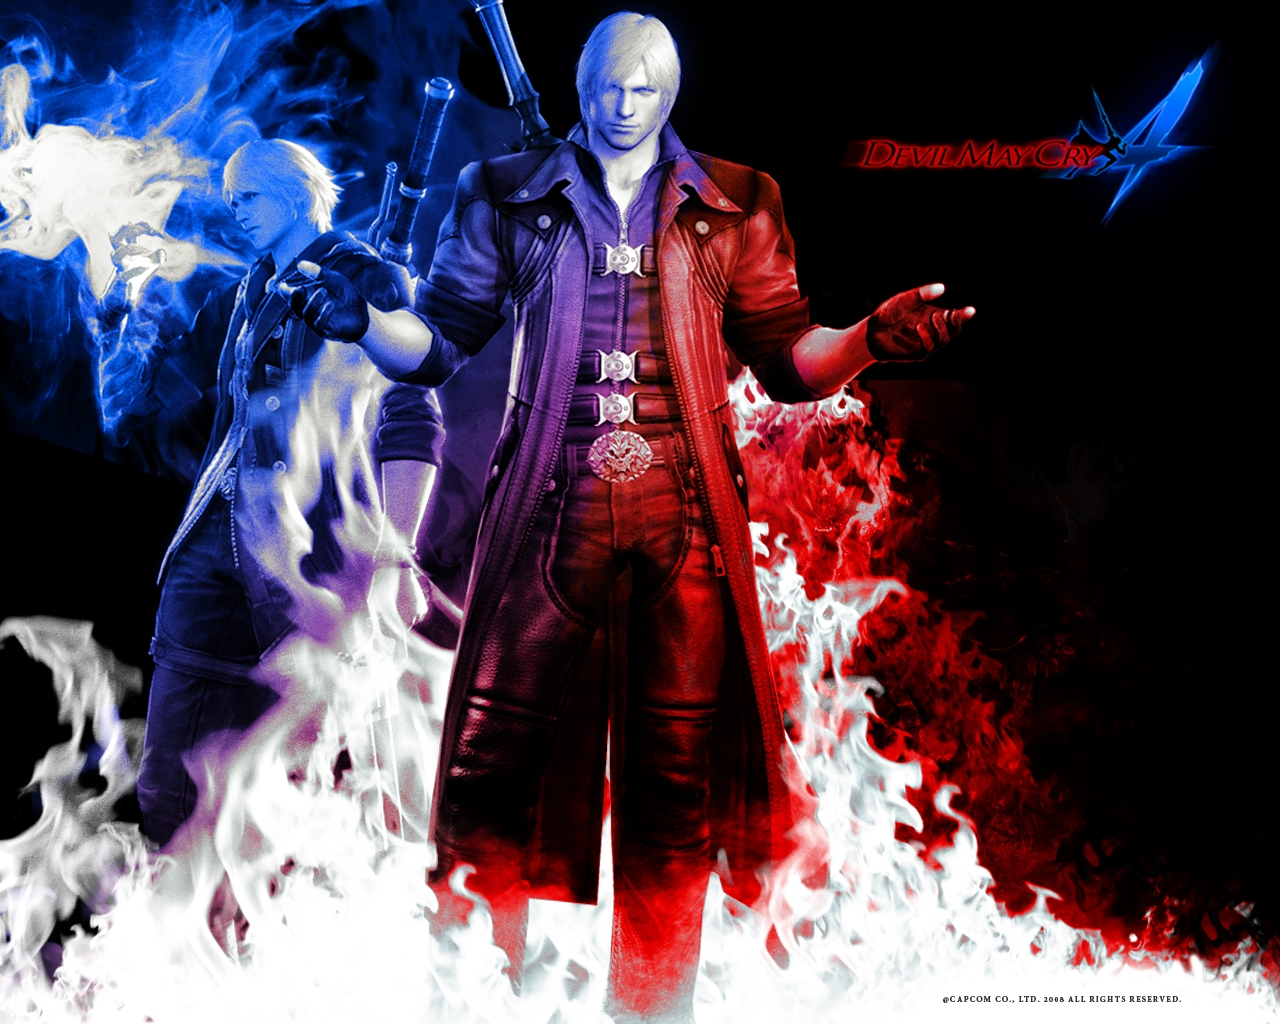 Devil may cry wallpaper 955811 zerochan anime image board view fullsize devil may cry image voltagebd Images